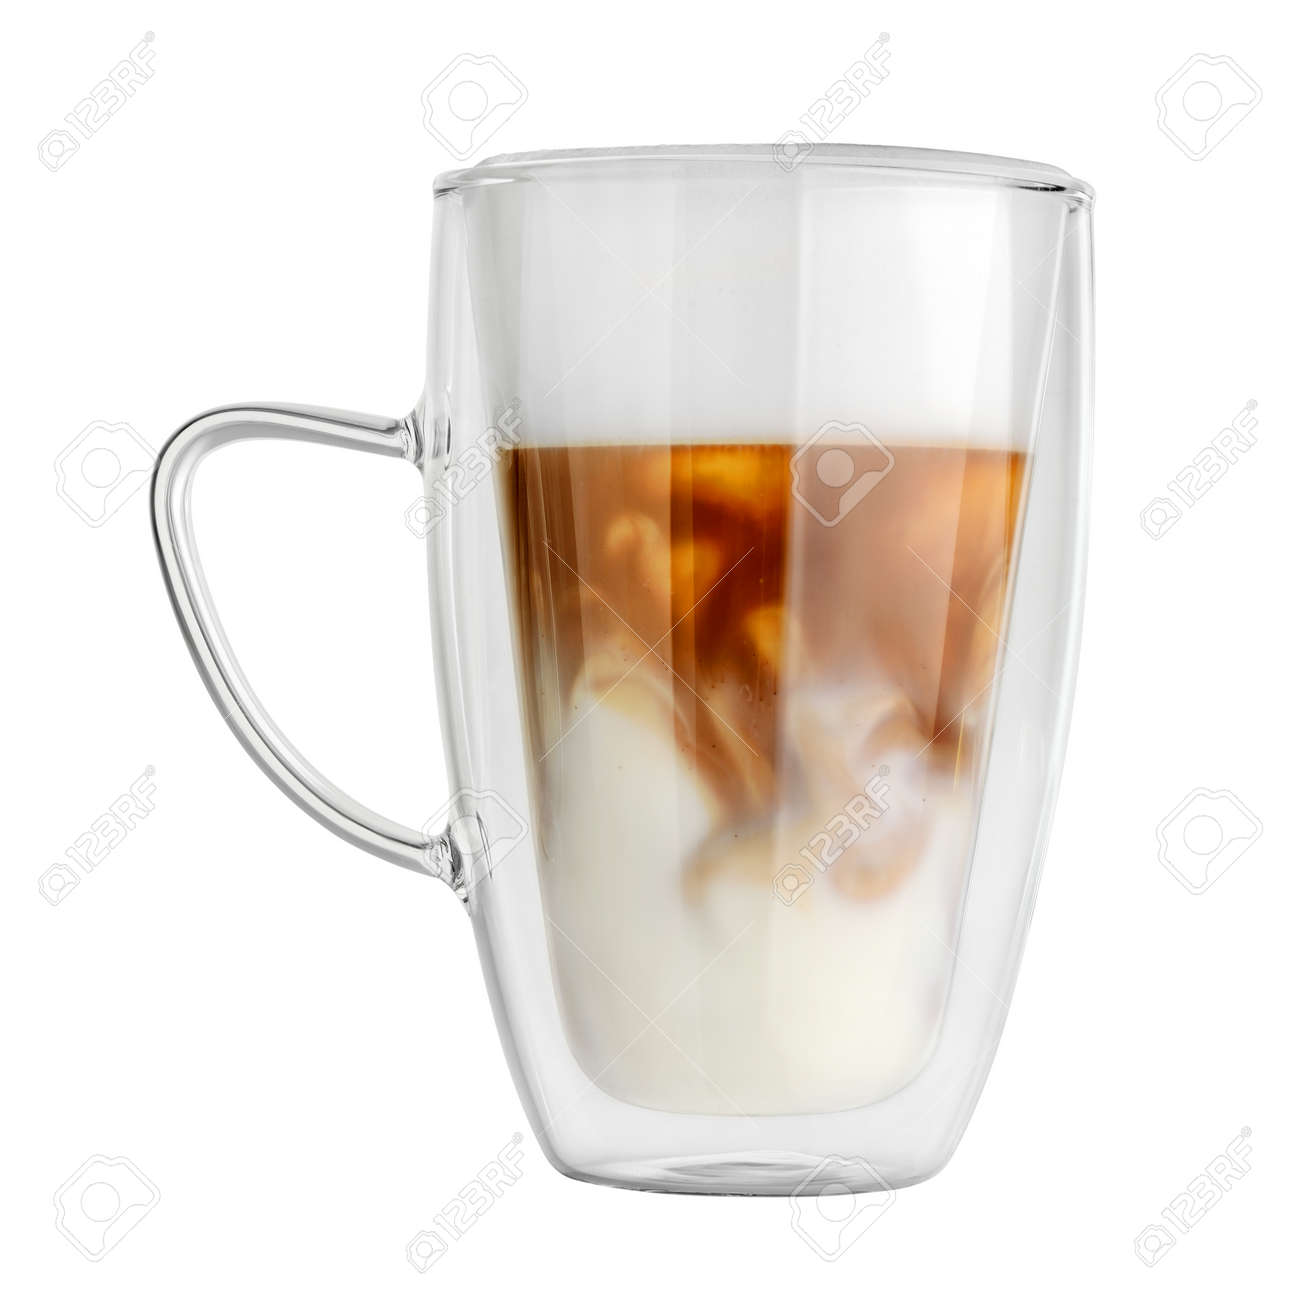 Transparent Double Wall Glass Mug With Latte Coffee Isolated Stock Photo Picture And Royalty Free Image Image 125538190